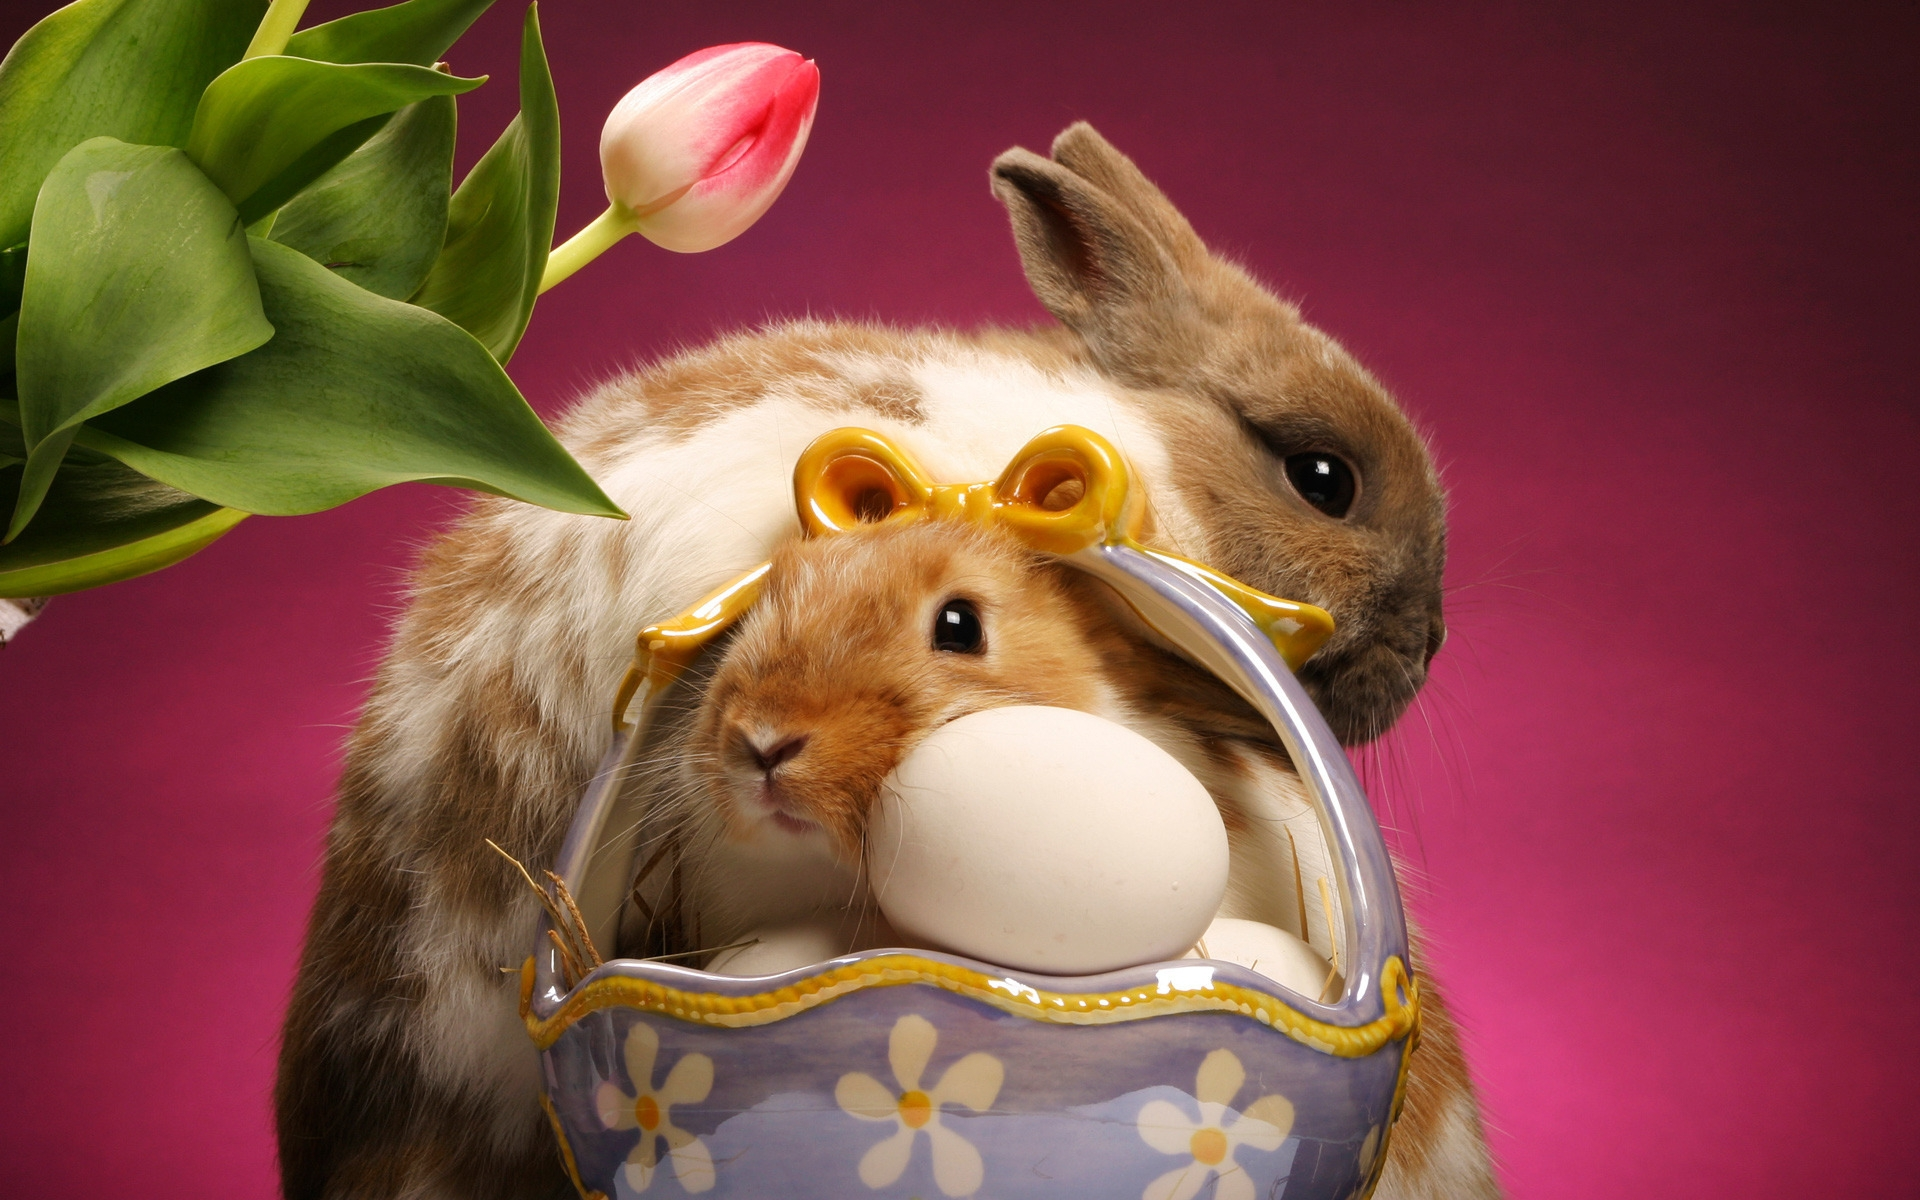 34641 download wallpaper Animals, Rabbits screensavers and pictures for free